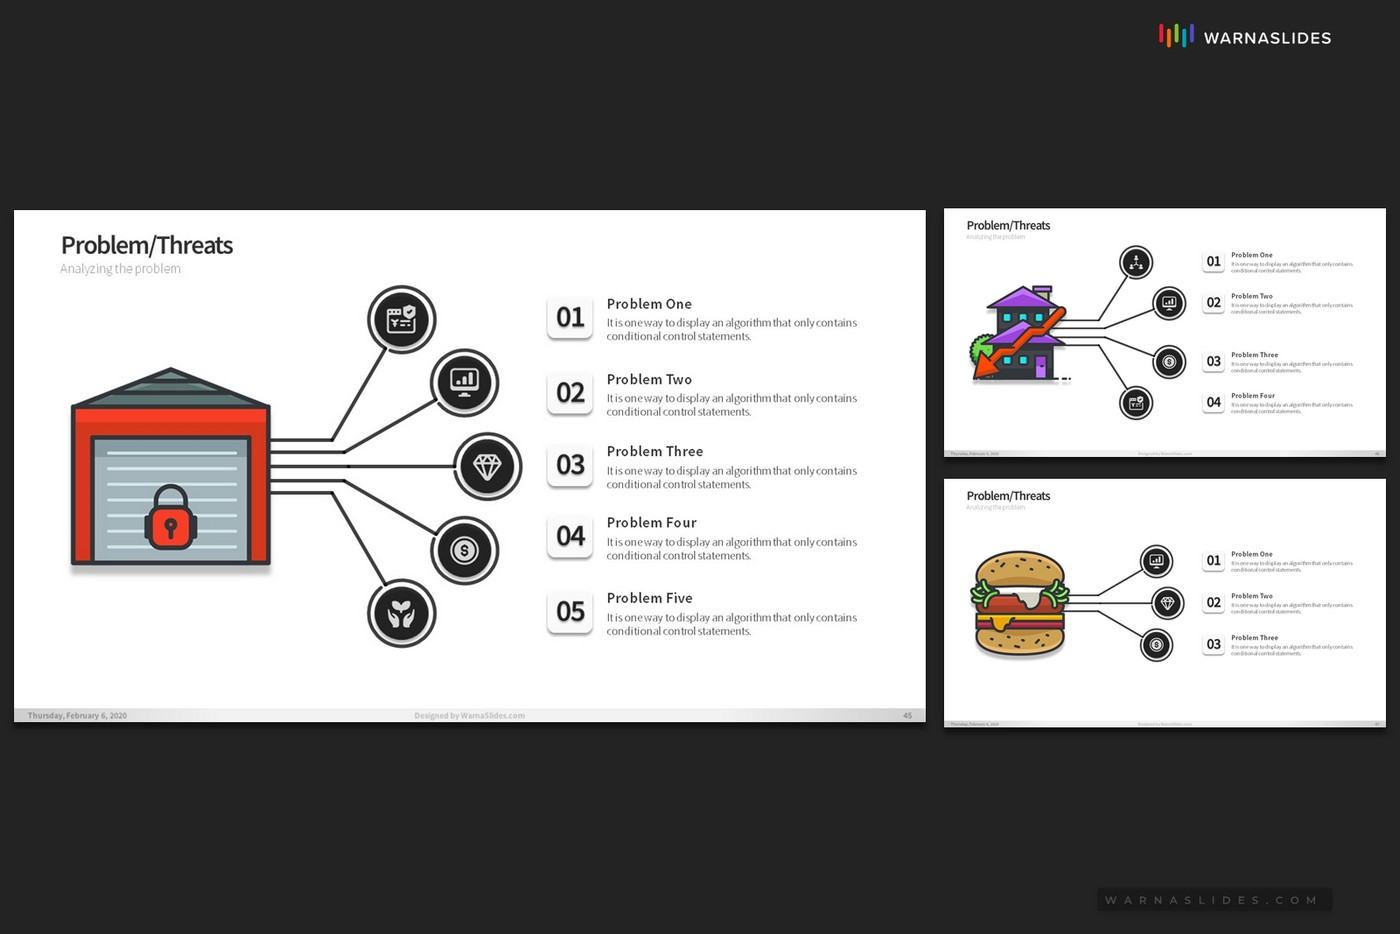 Problem-Threats-Risk-Management-Weaknesses-Services-Brainstorm-PowerPoint-Template-2020-for-Business-Pitch-Deck-Professional-Creative-Presentation-by-Warna-Slides-015